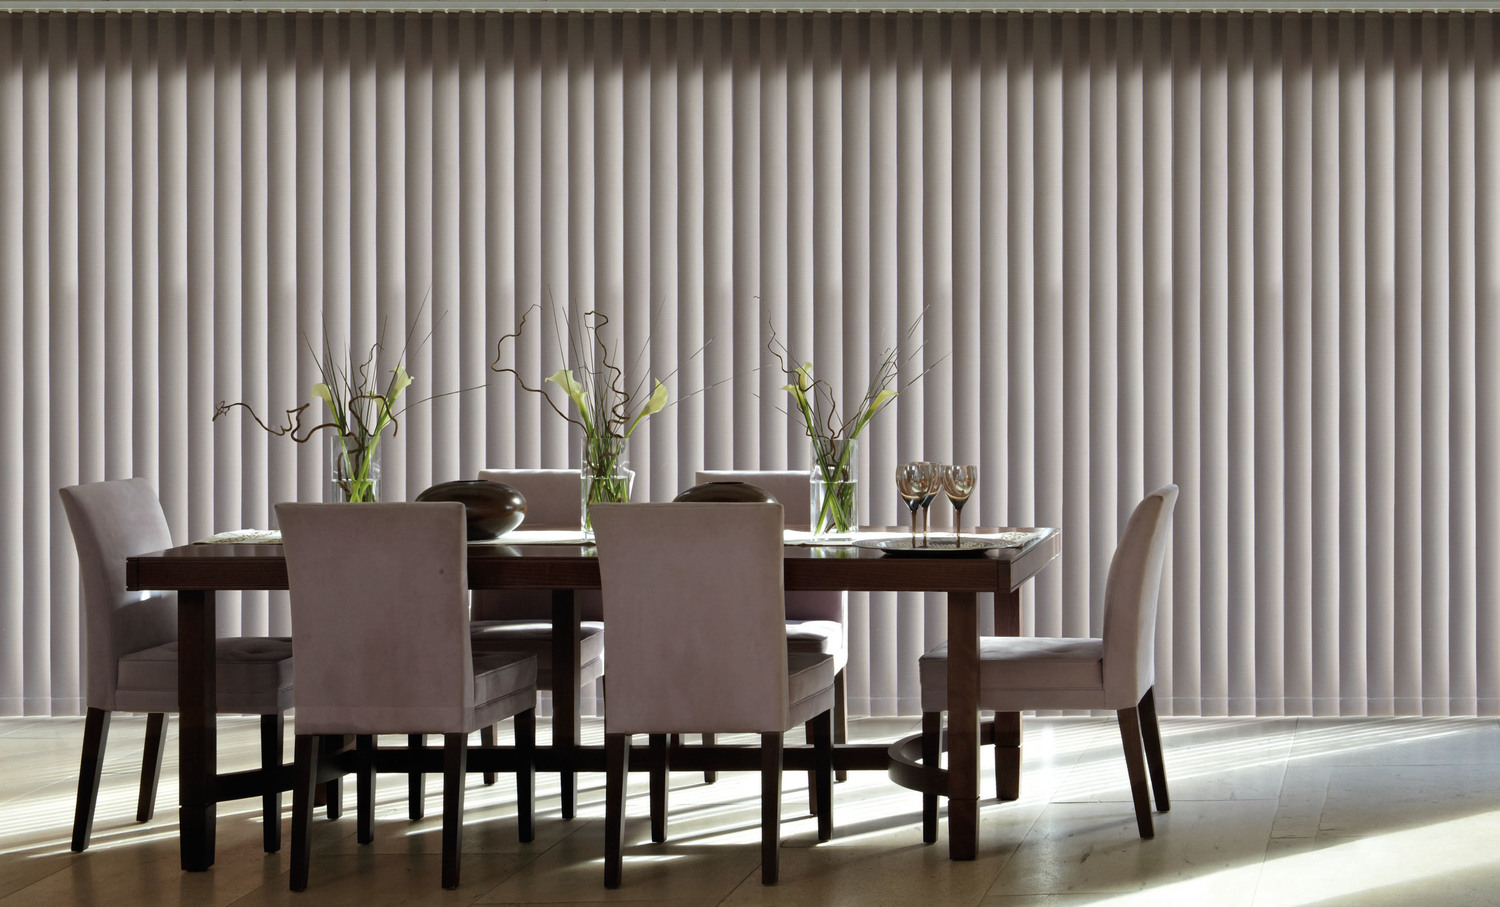 How to clean vertical blinds - Vertical Blinds With Pvc Slats No Chains Hard Wearing Easy To Clean And Blackout